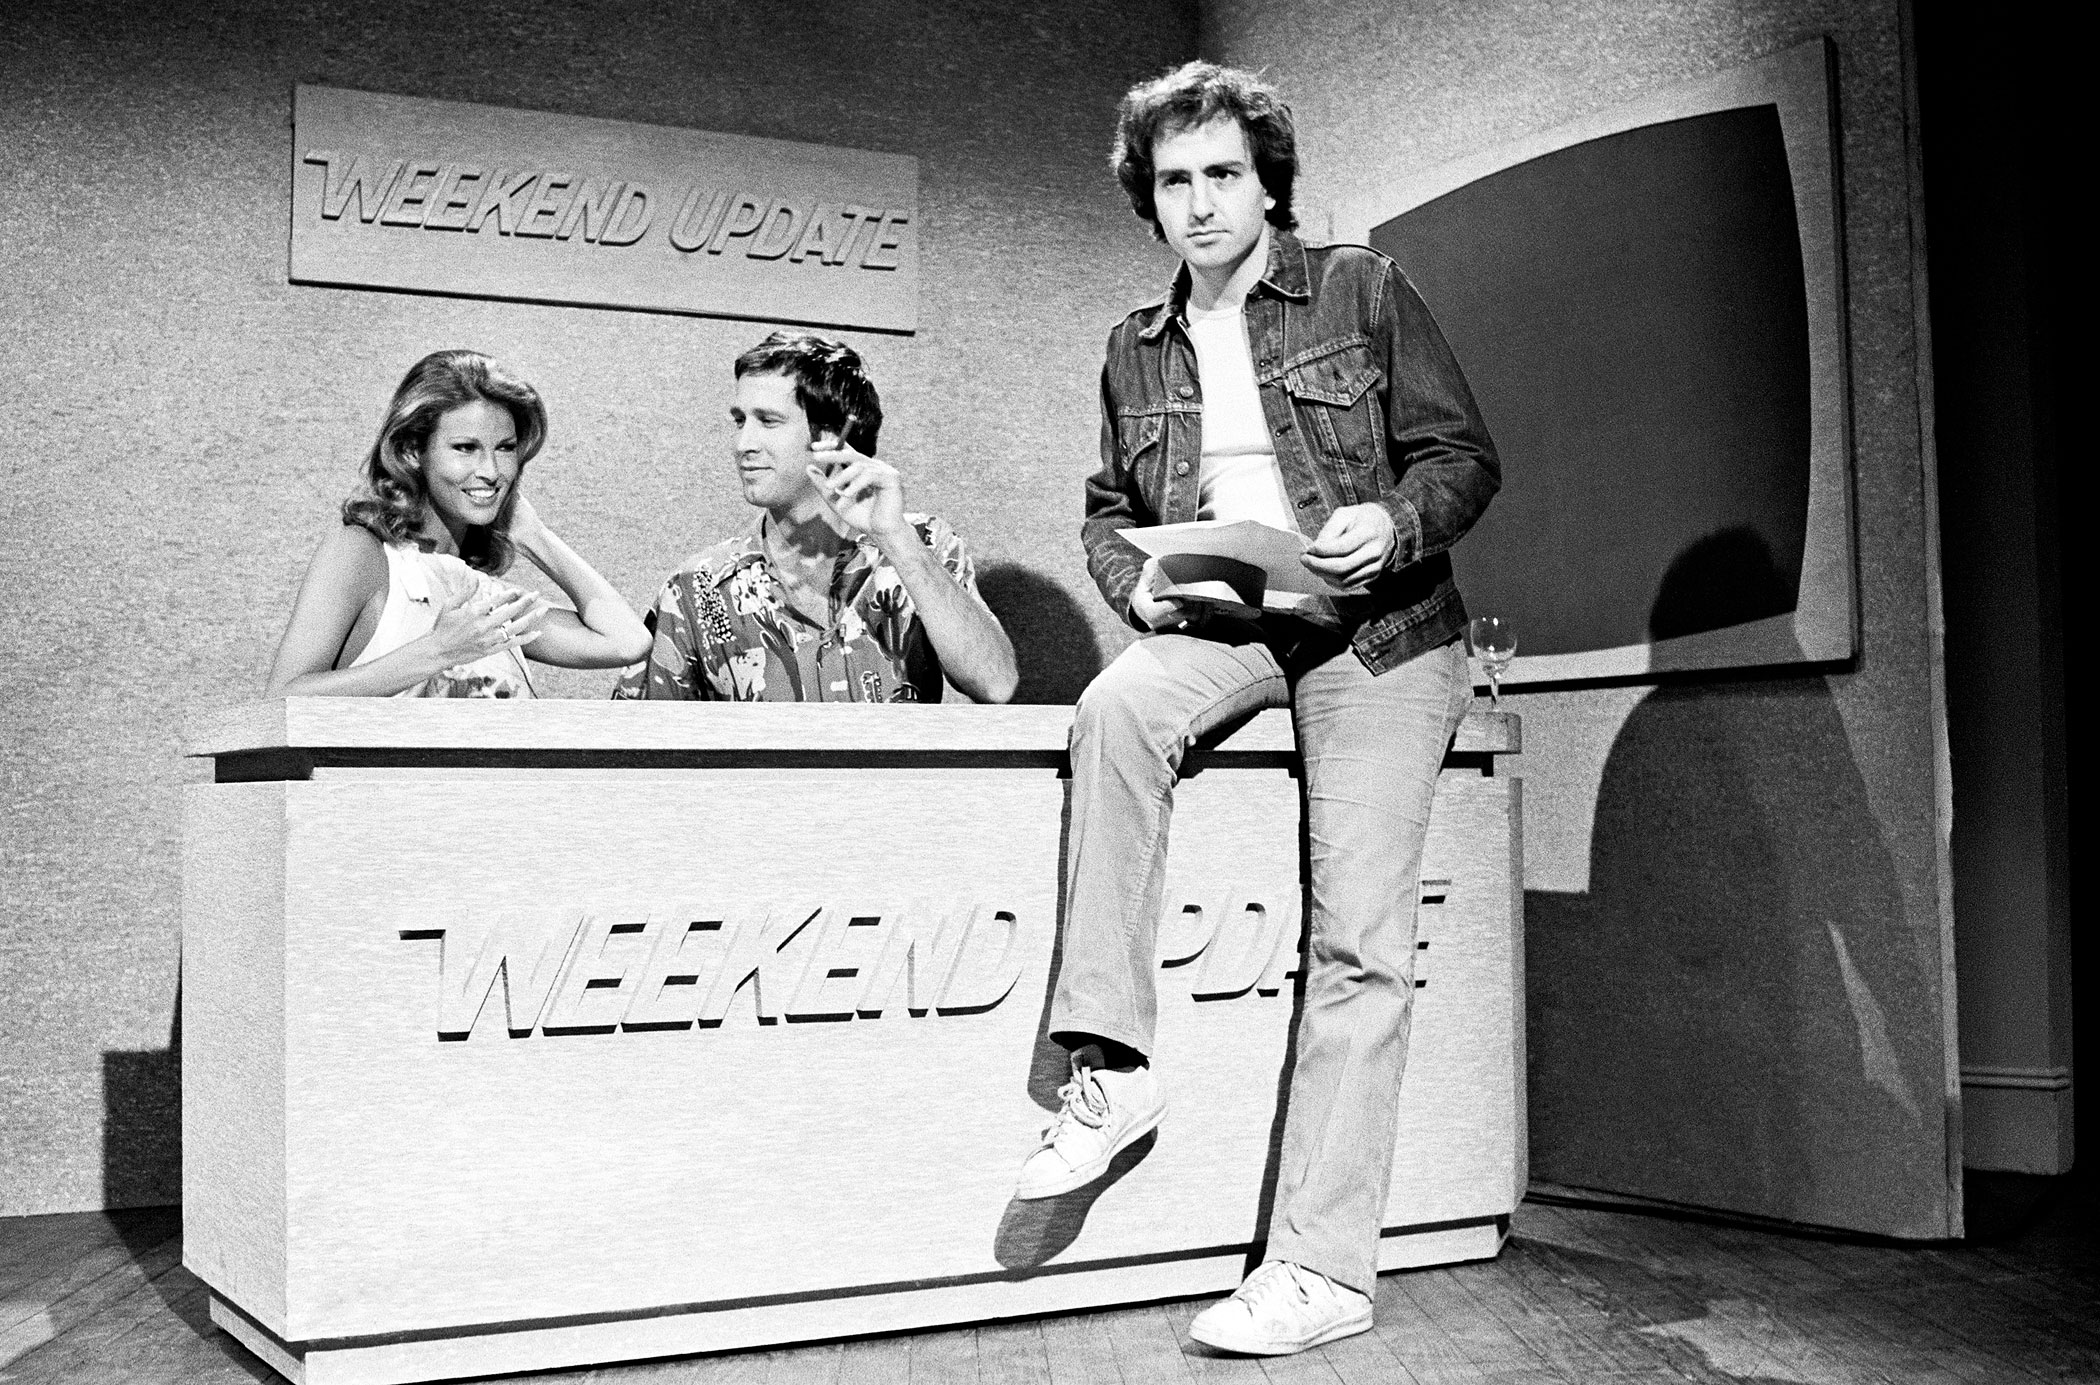 """Raquel Welch, Chevy Chase and Lorne Michaels during the """"Weekend Update"""" skit on April 24, 1976."""